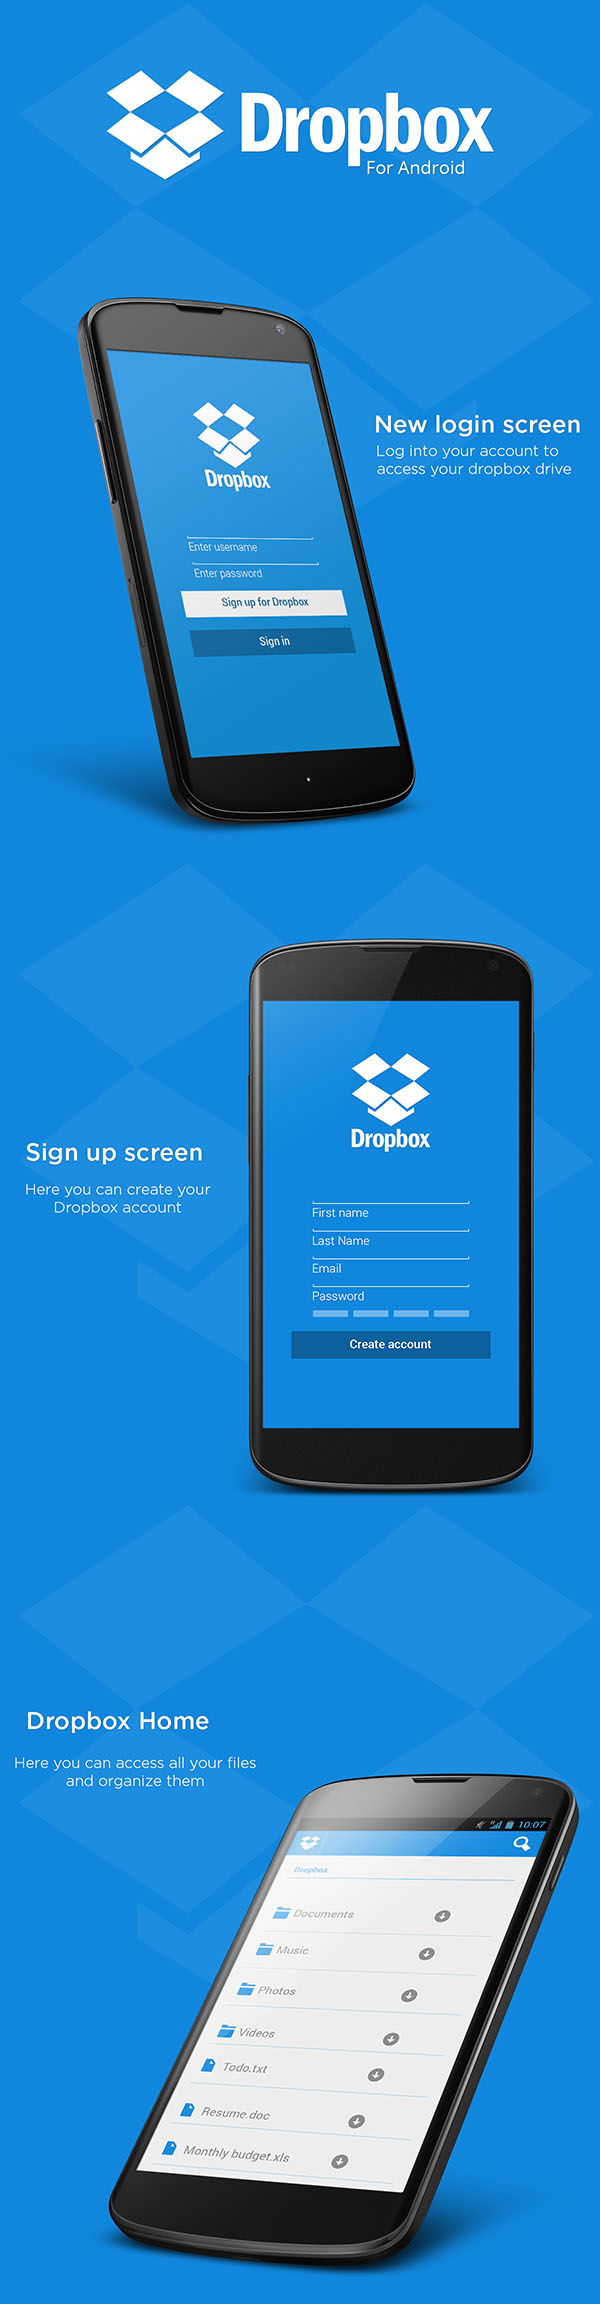 dropbox Mobile UI Design Inspiration #4